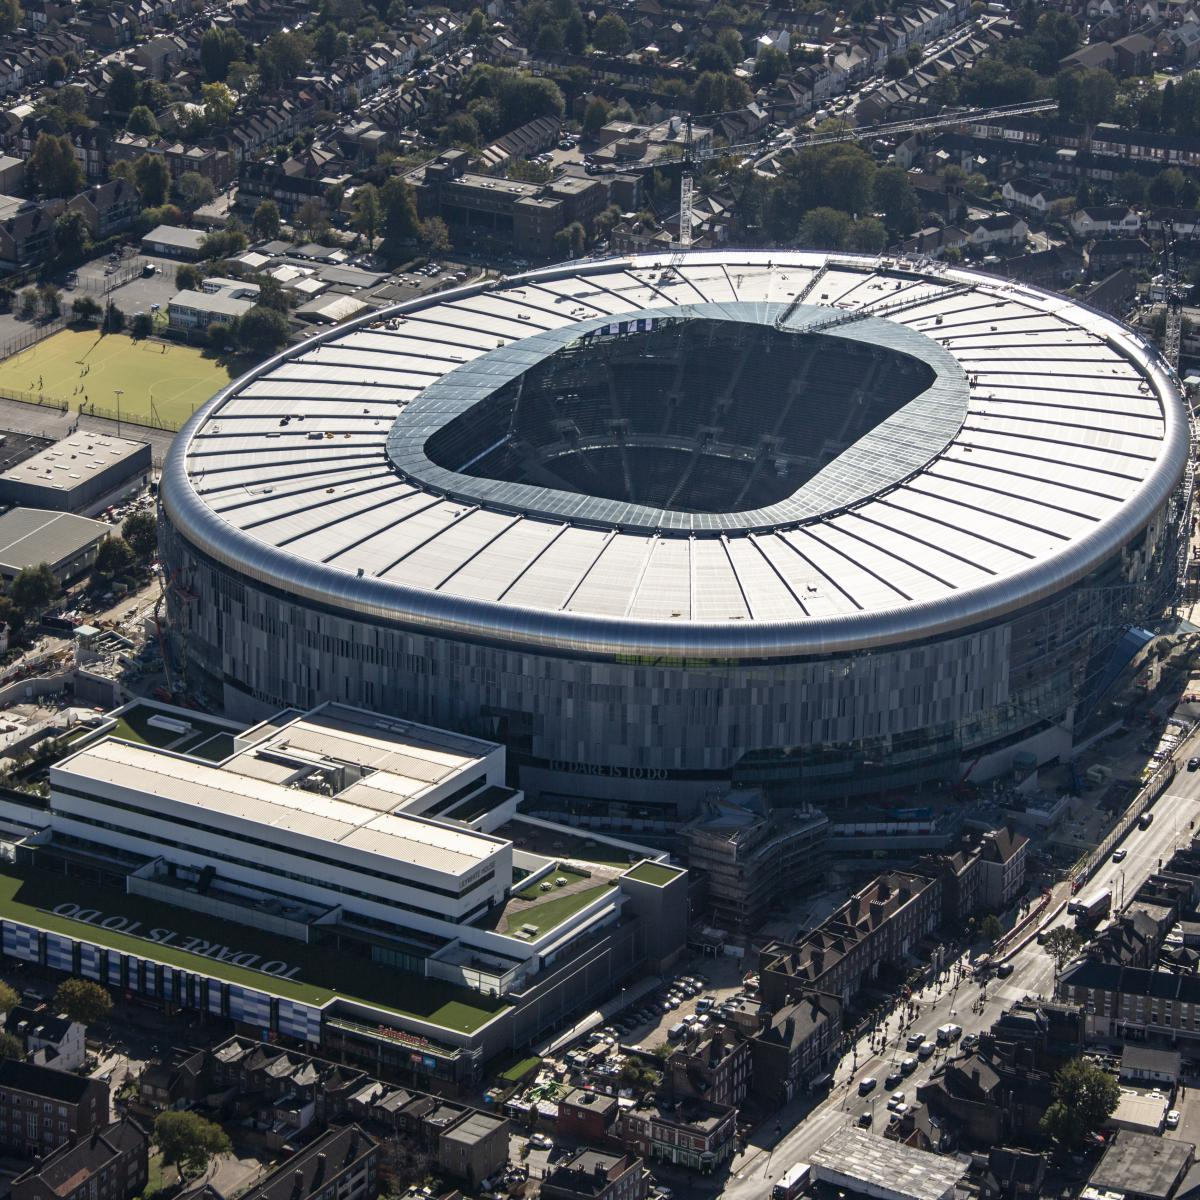 Tottenham Hotspur Ticket Office: Tottenham Announce 1st Match In New Stadium Will Be Played